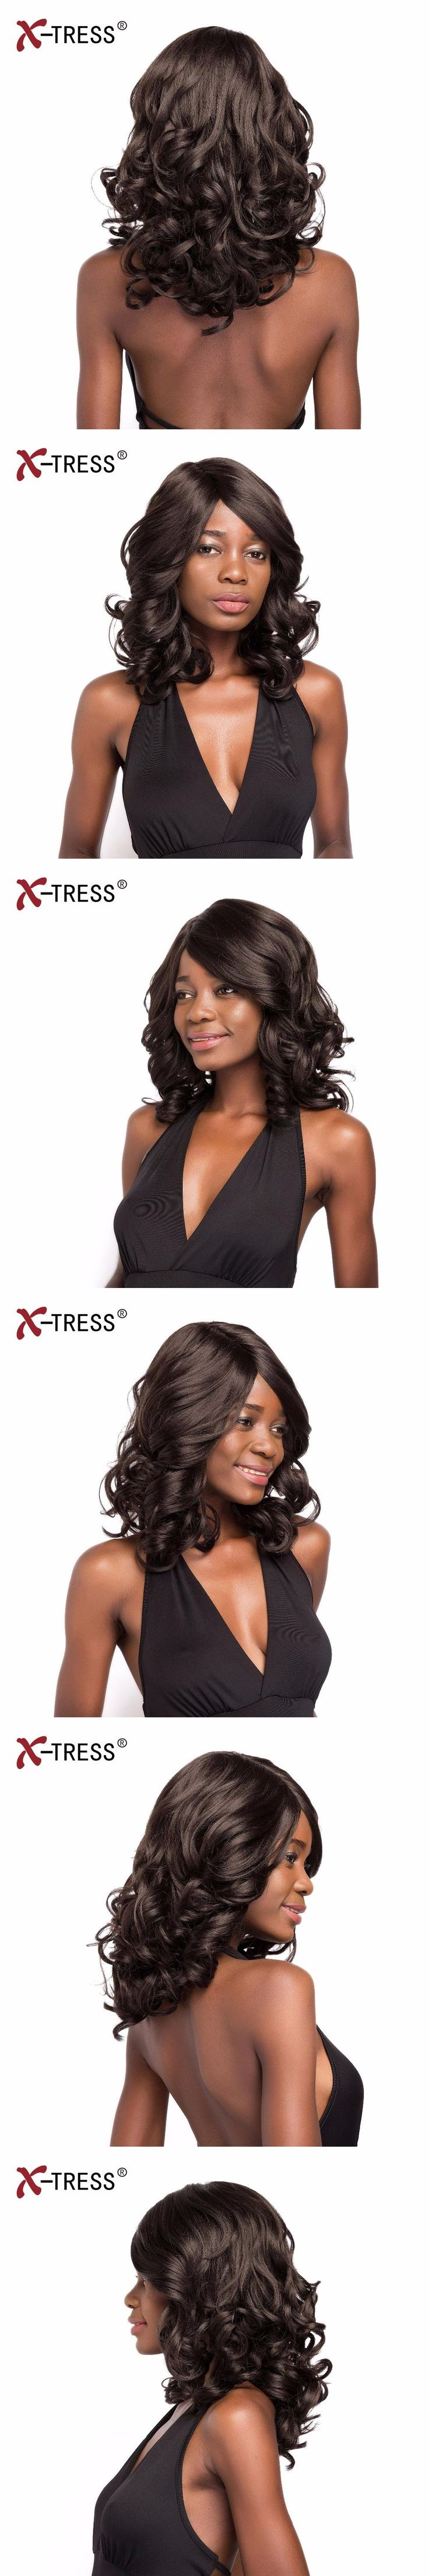 X-TRESS 14inches Wavy With Side Part Ombre With Bang Heat Resistant Loose Deep Wave WigsSynthetic Wig For Black Women